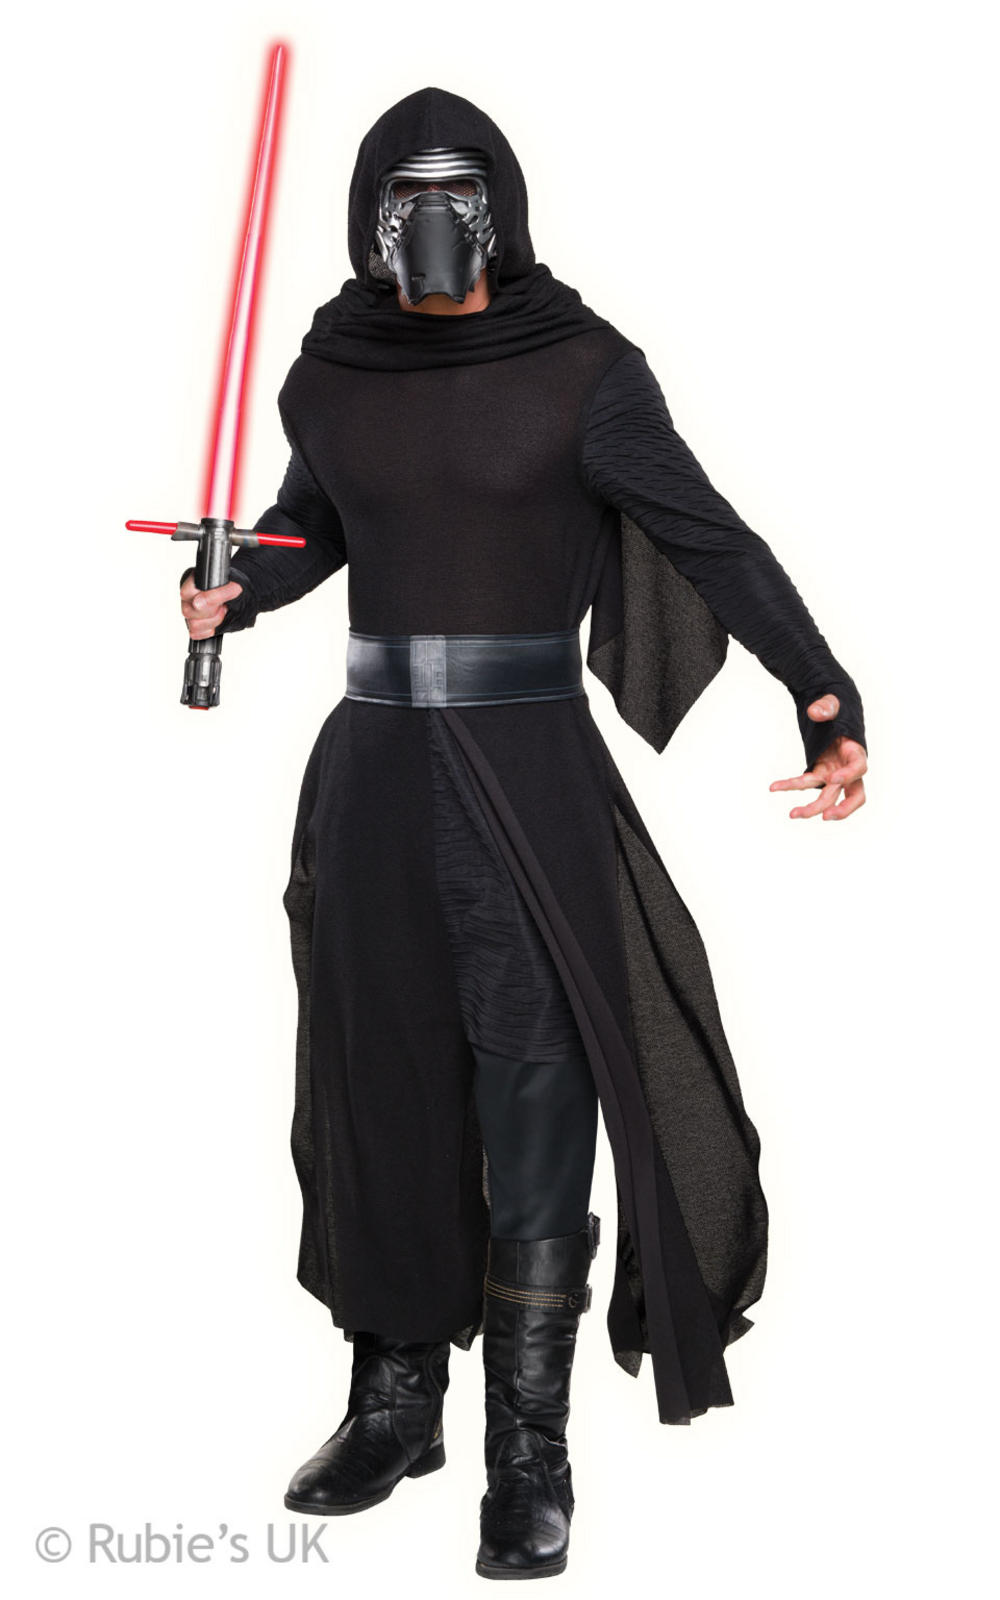 Deluxe Kylo Ren The Force Awakens Star Wars Costume